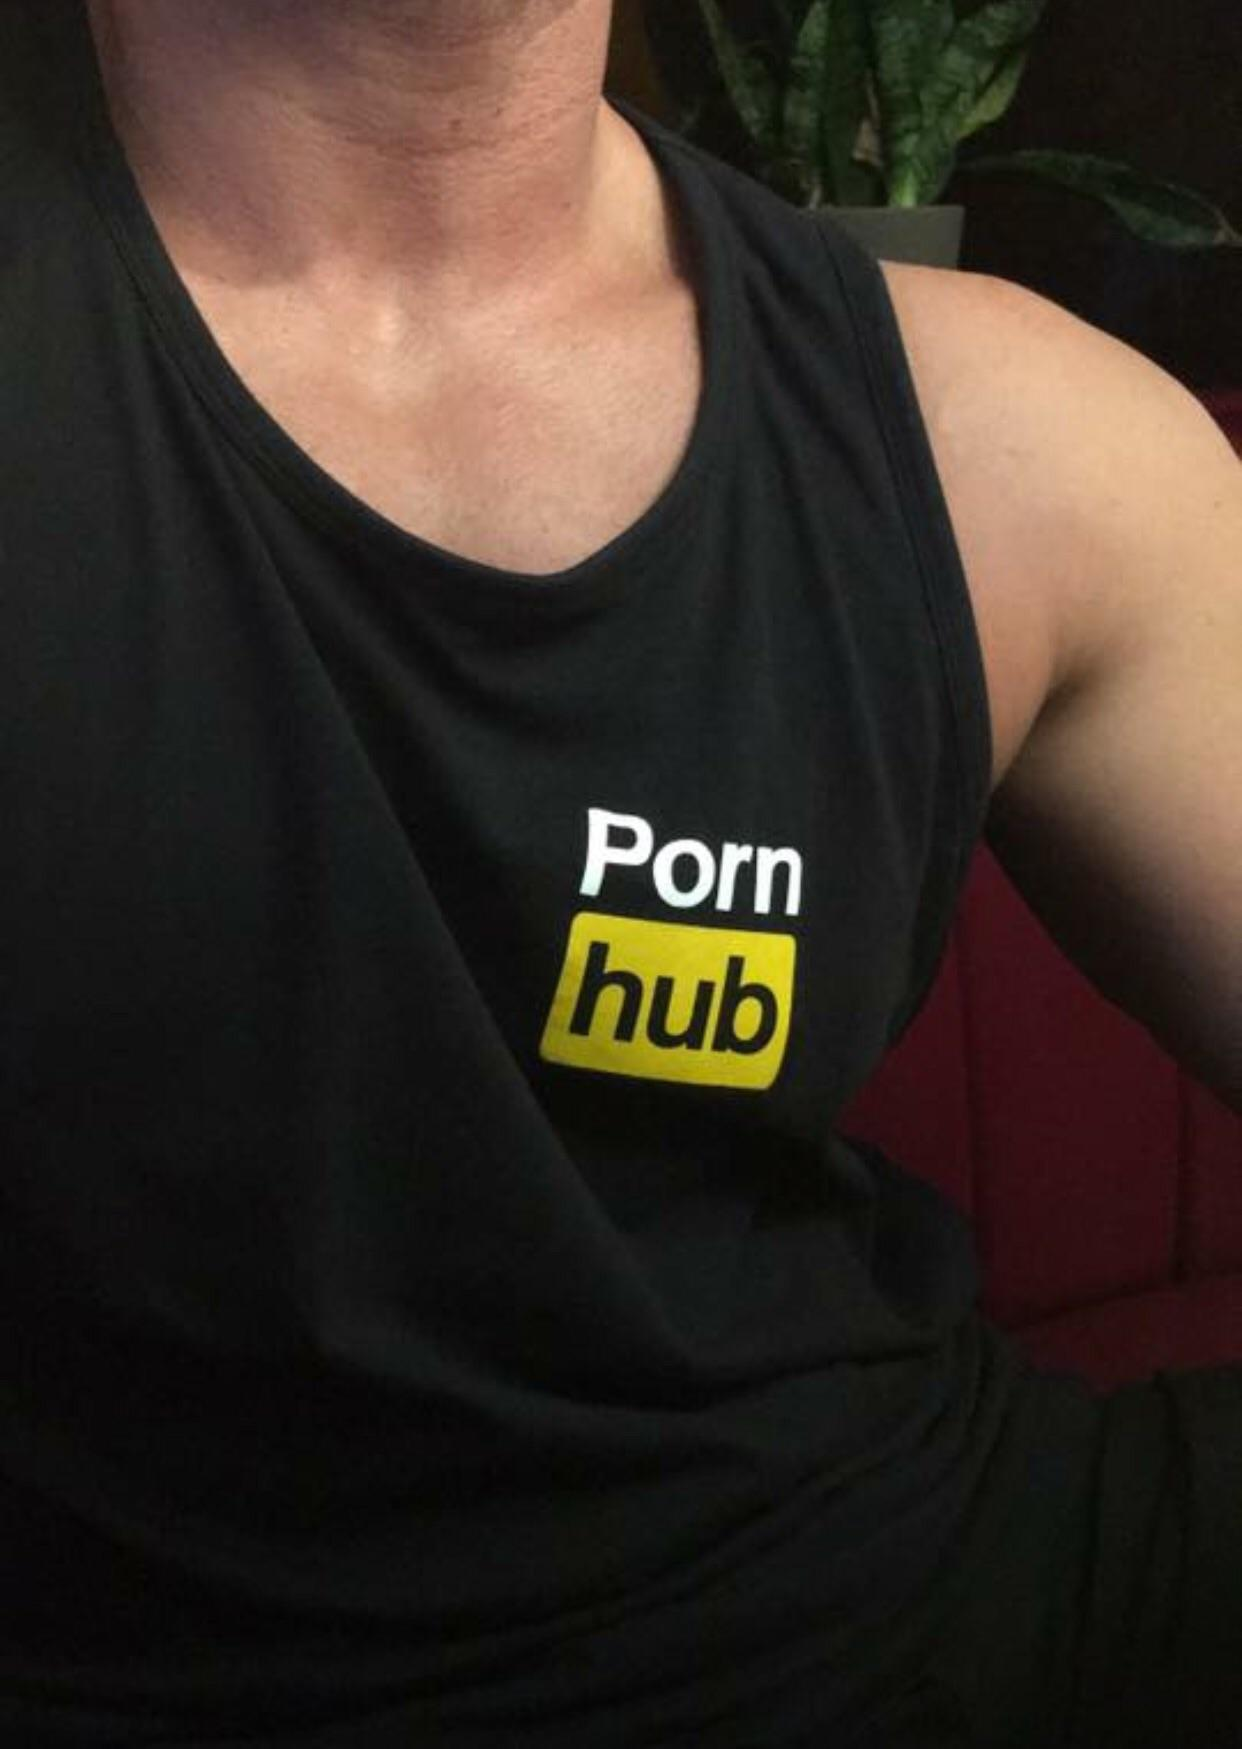 That time a guy wore a Porn Hub tank top to our first date.